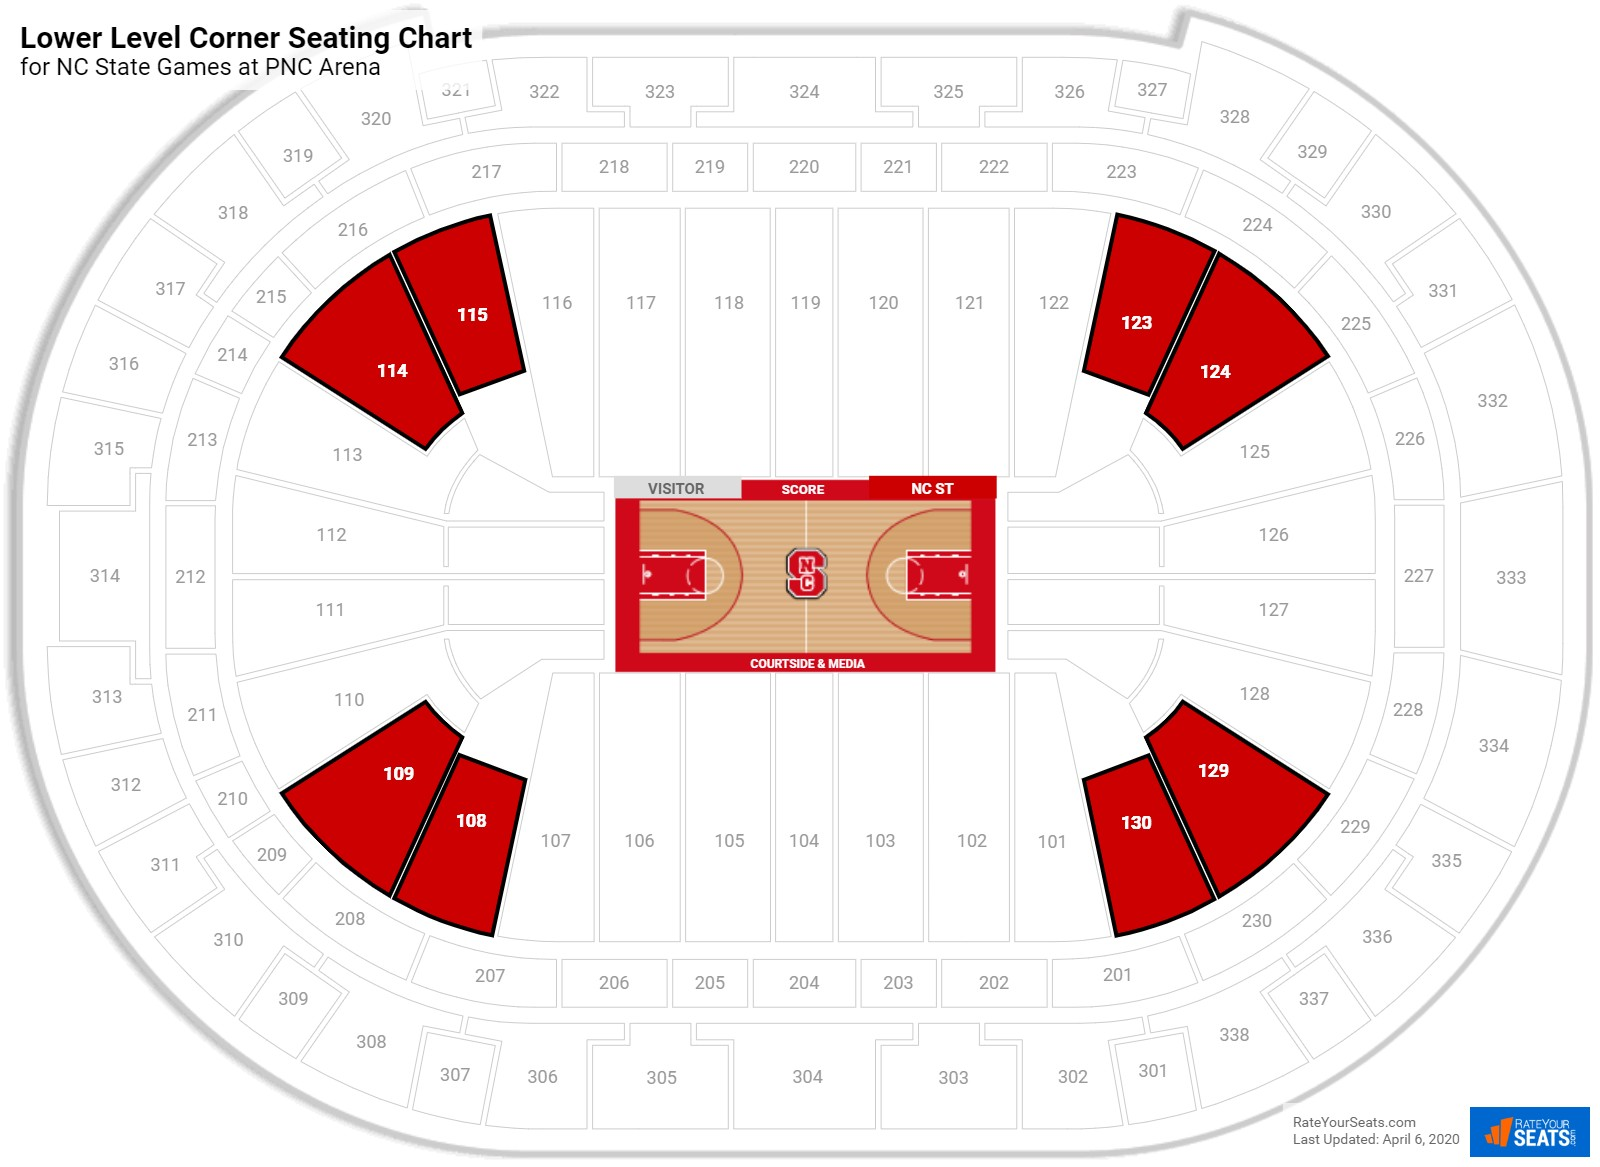 PNC Arena Lower Level Corner seating chart